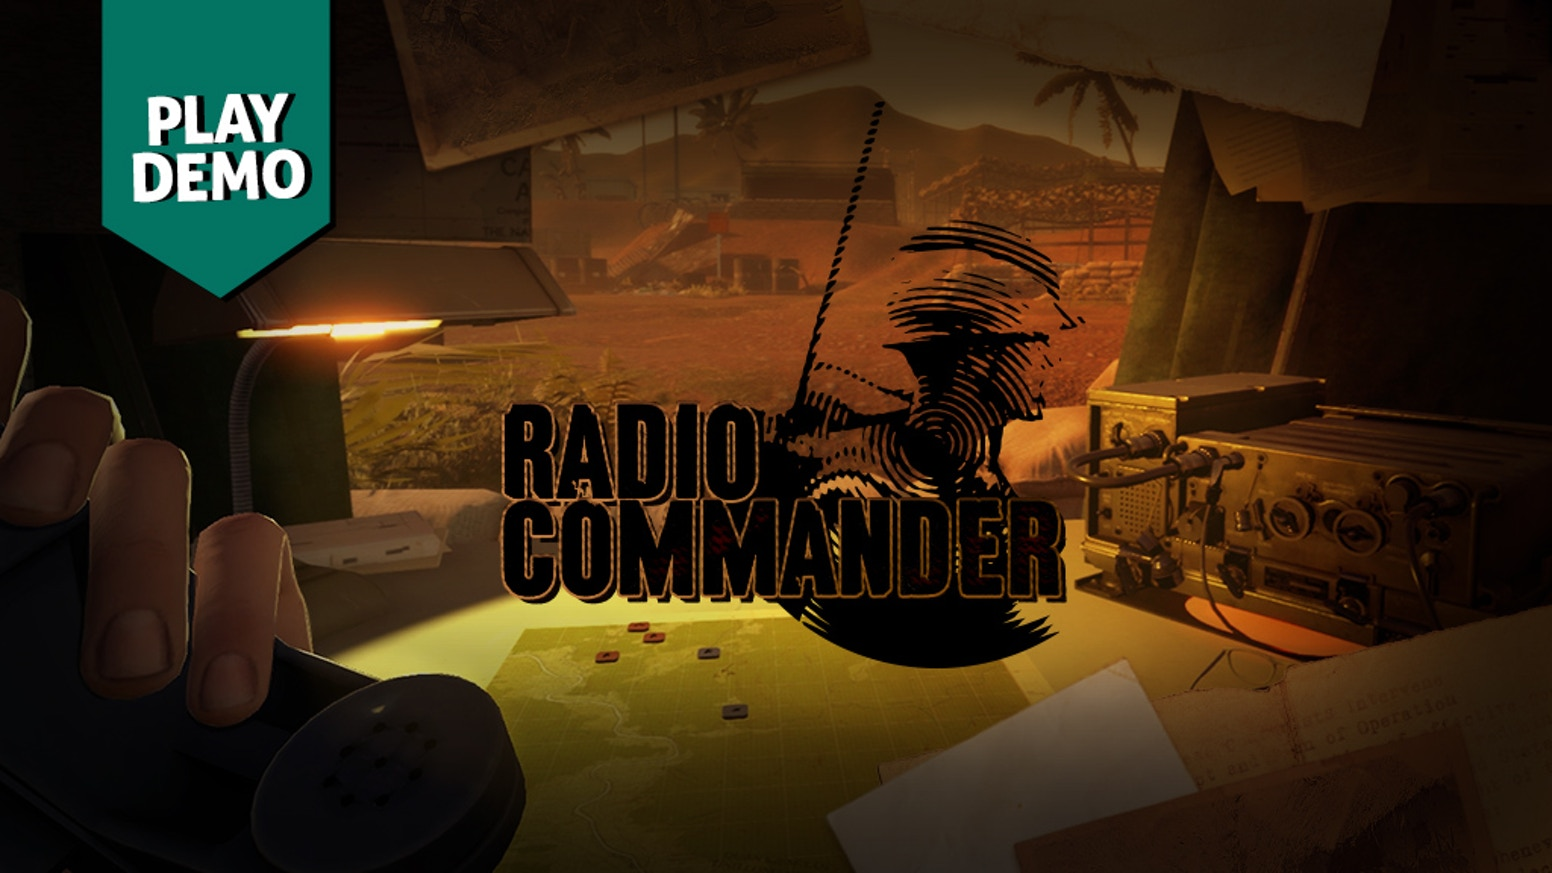 Use the radio to give commands to the soldiers on the battlefield. Keep track of the situation based on their voice reports only.